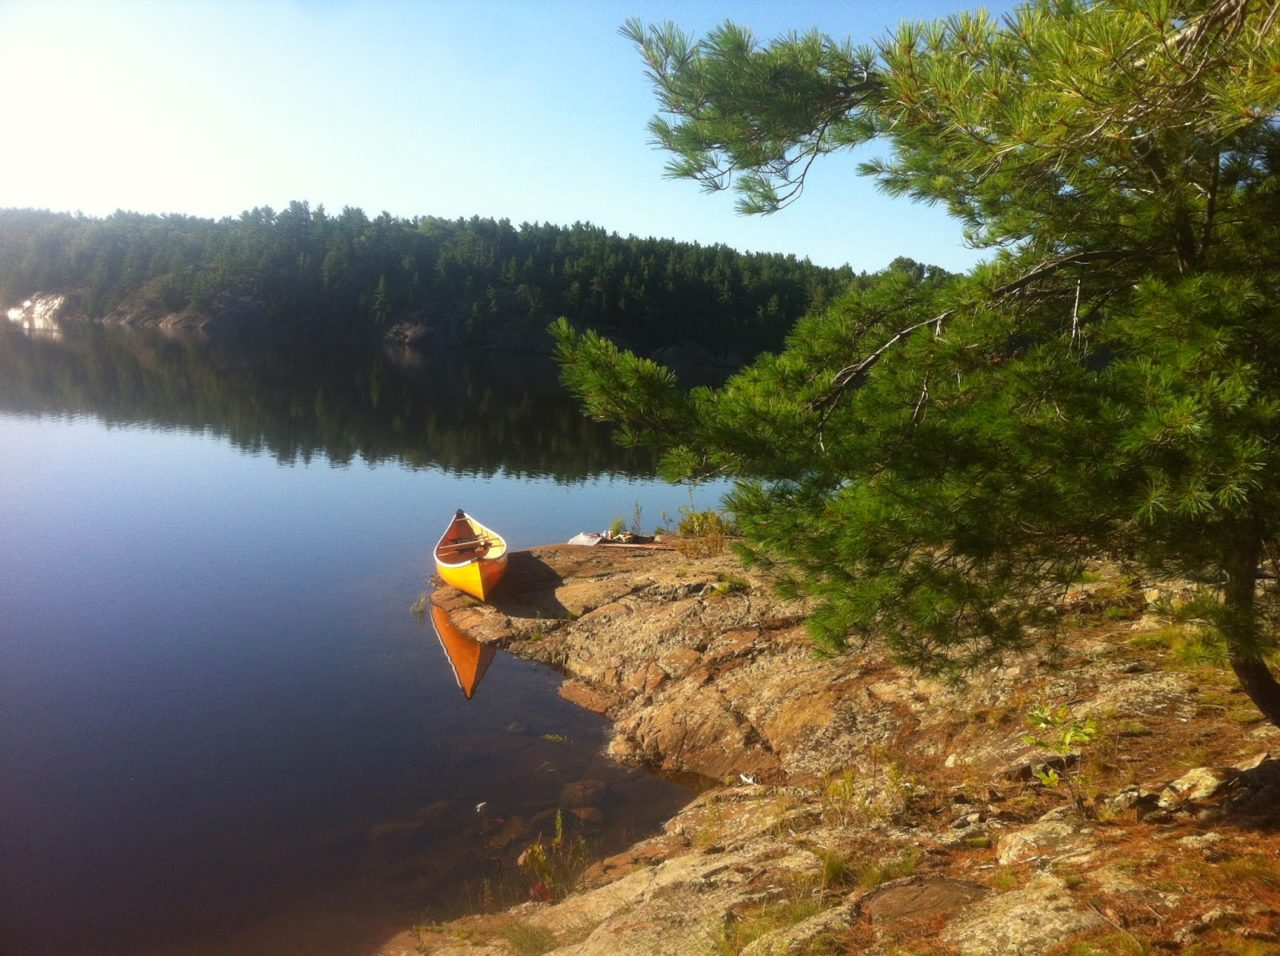 Our friendsoftemagami maintenance trip began with a long bumpy drive